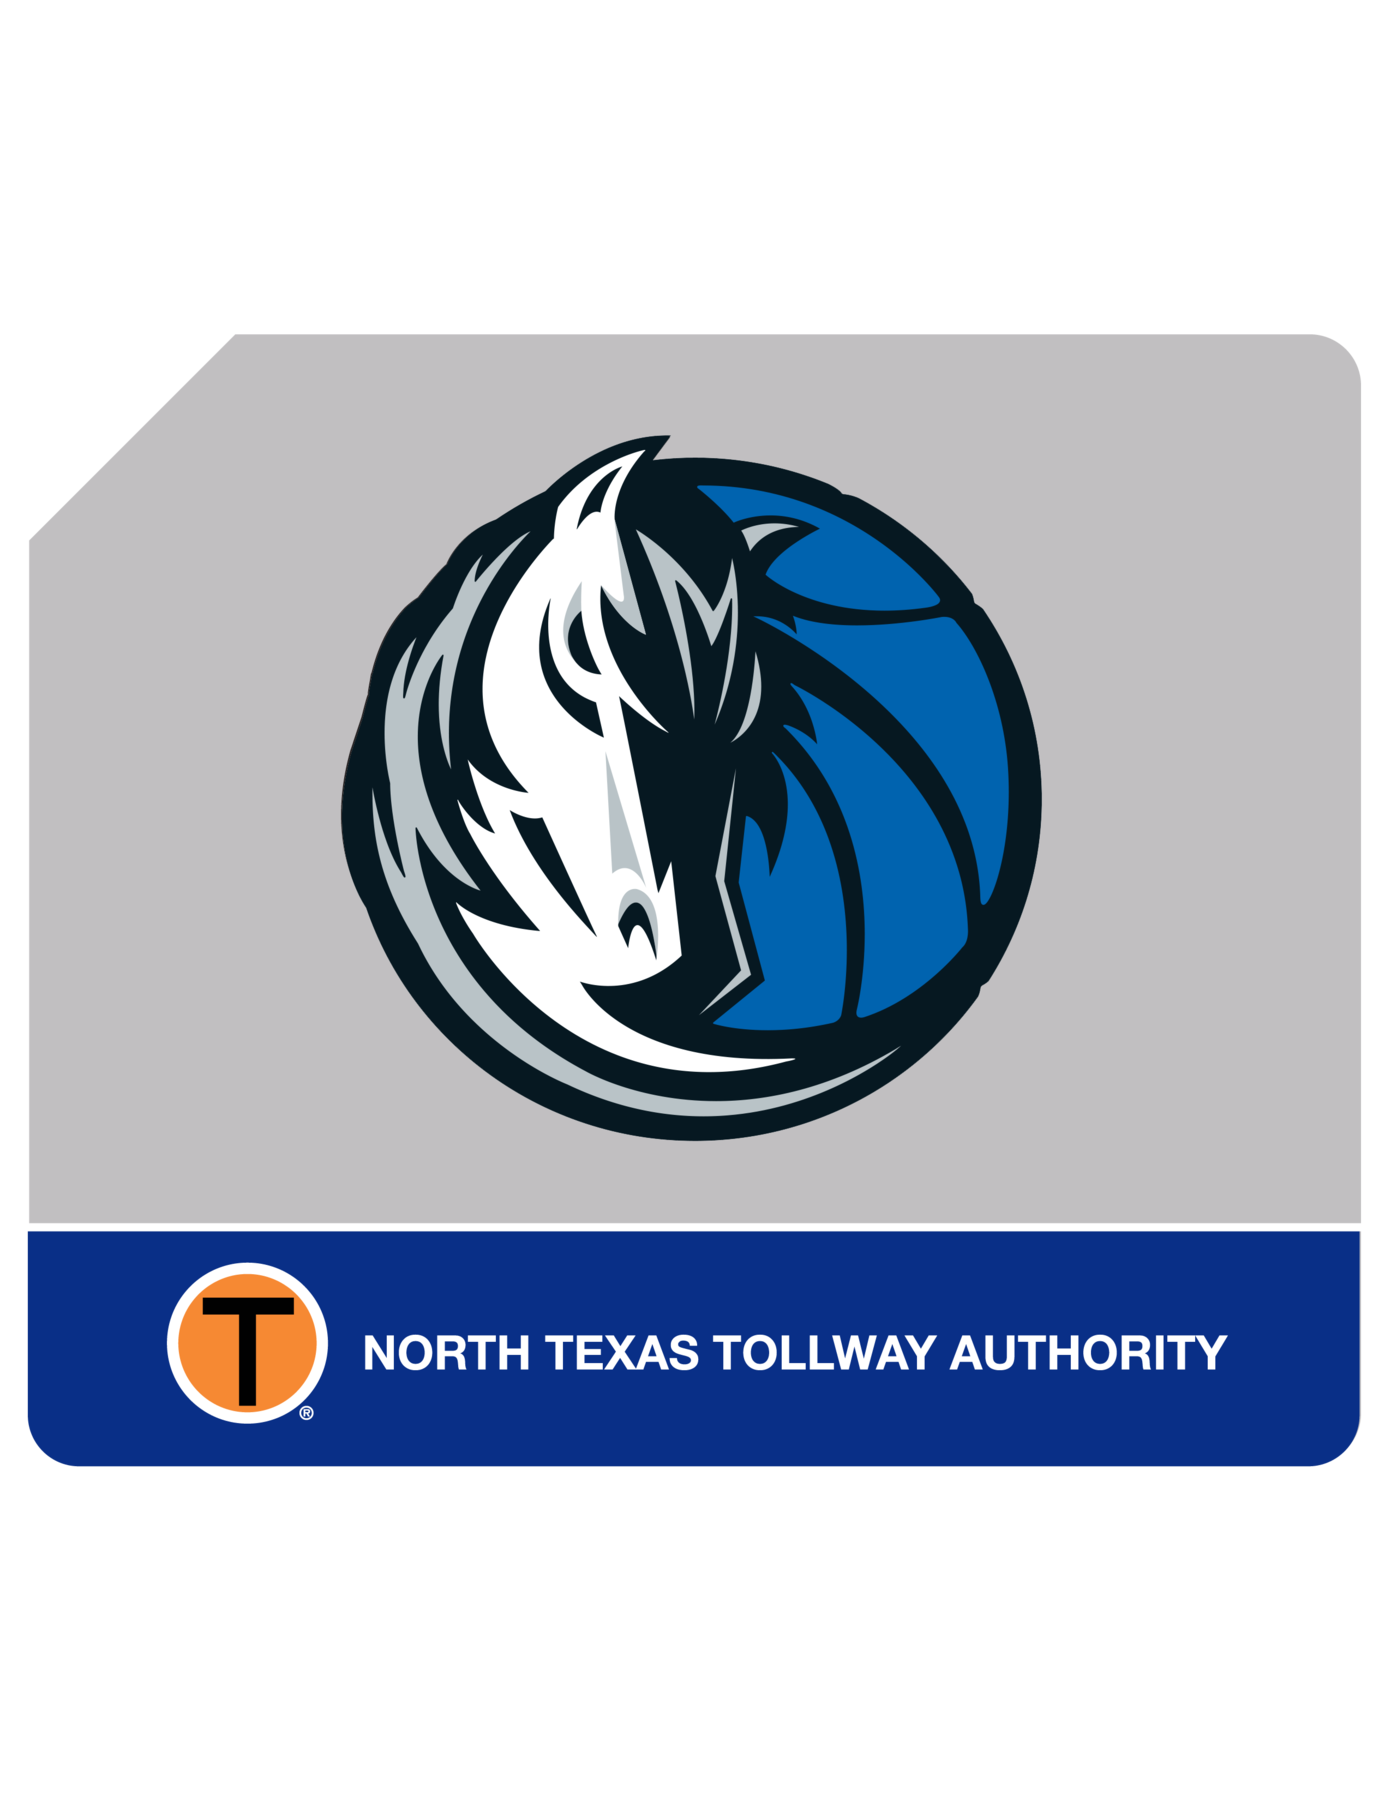 DALLAS MAVERICKS TOLLTAG.